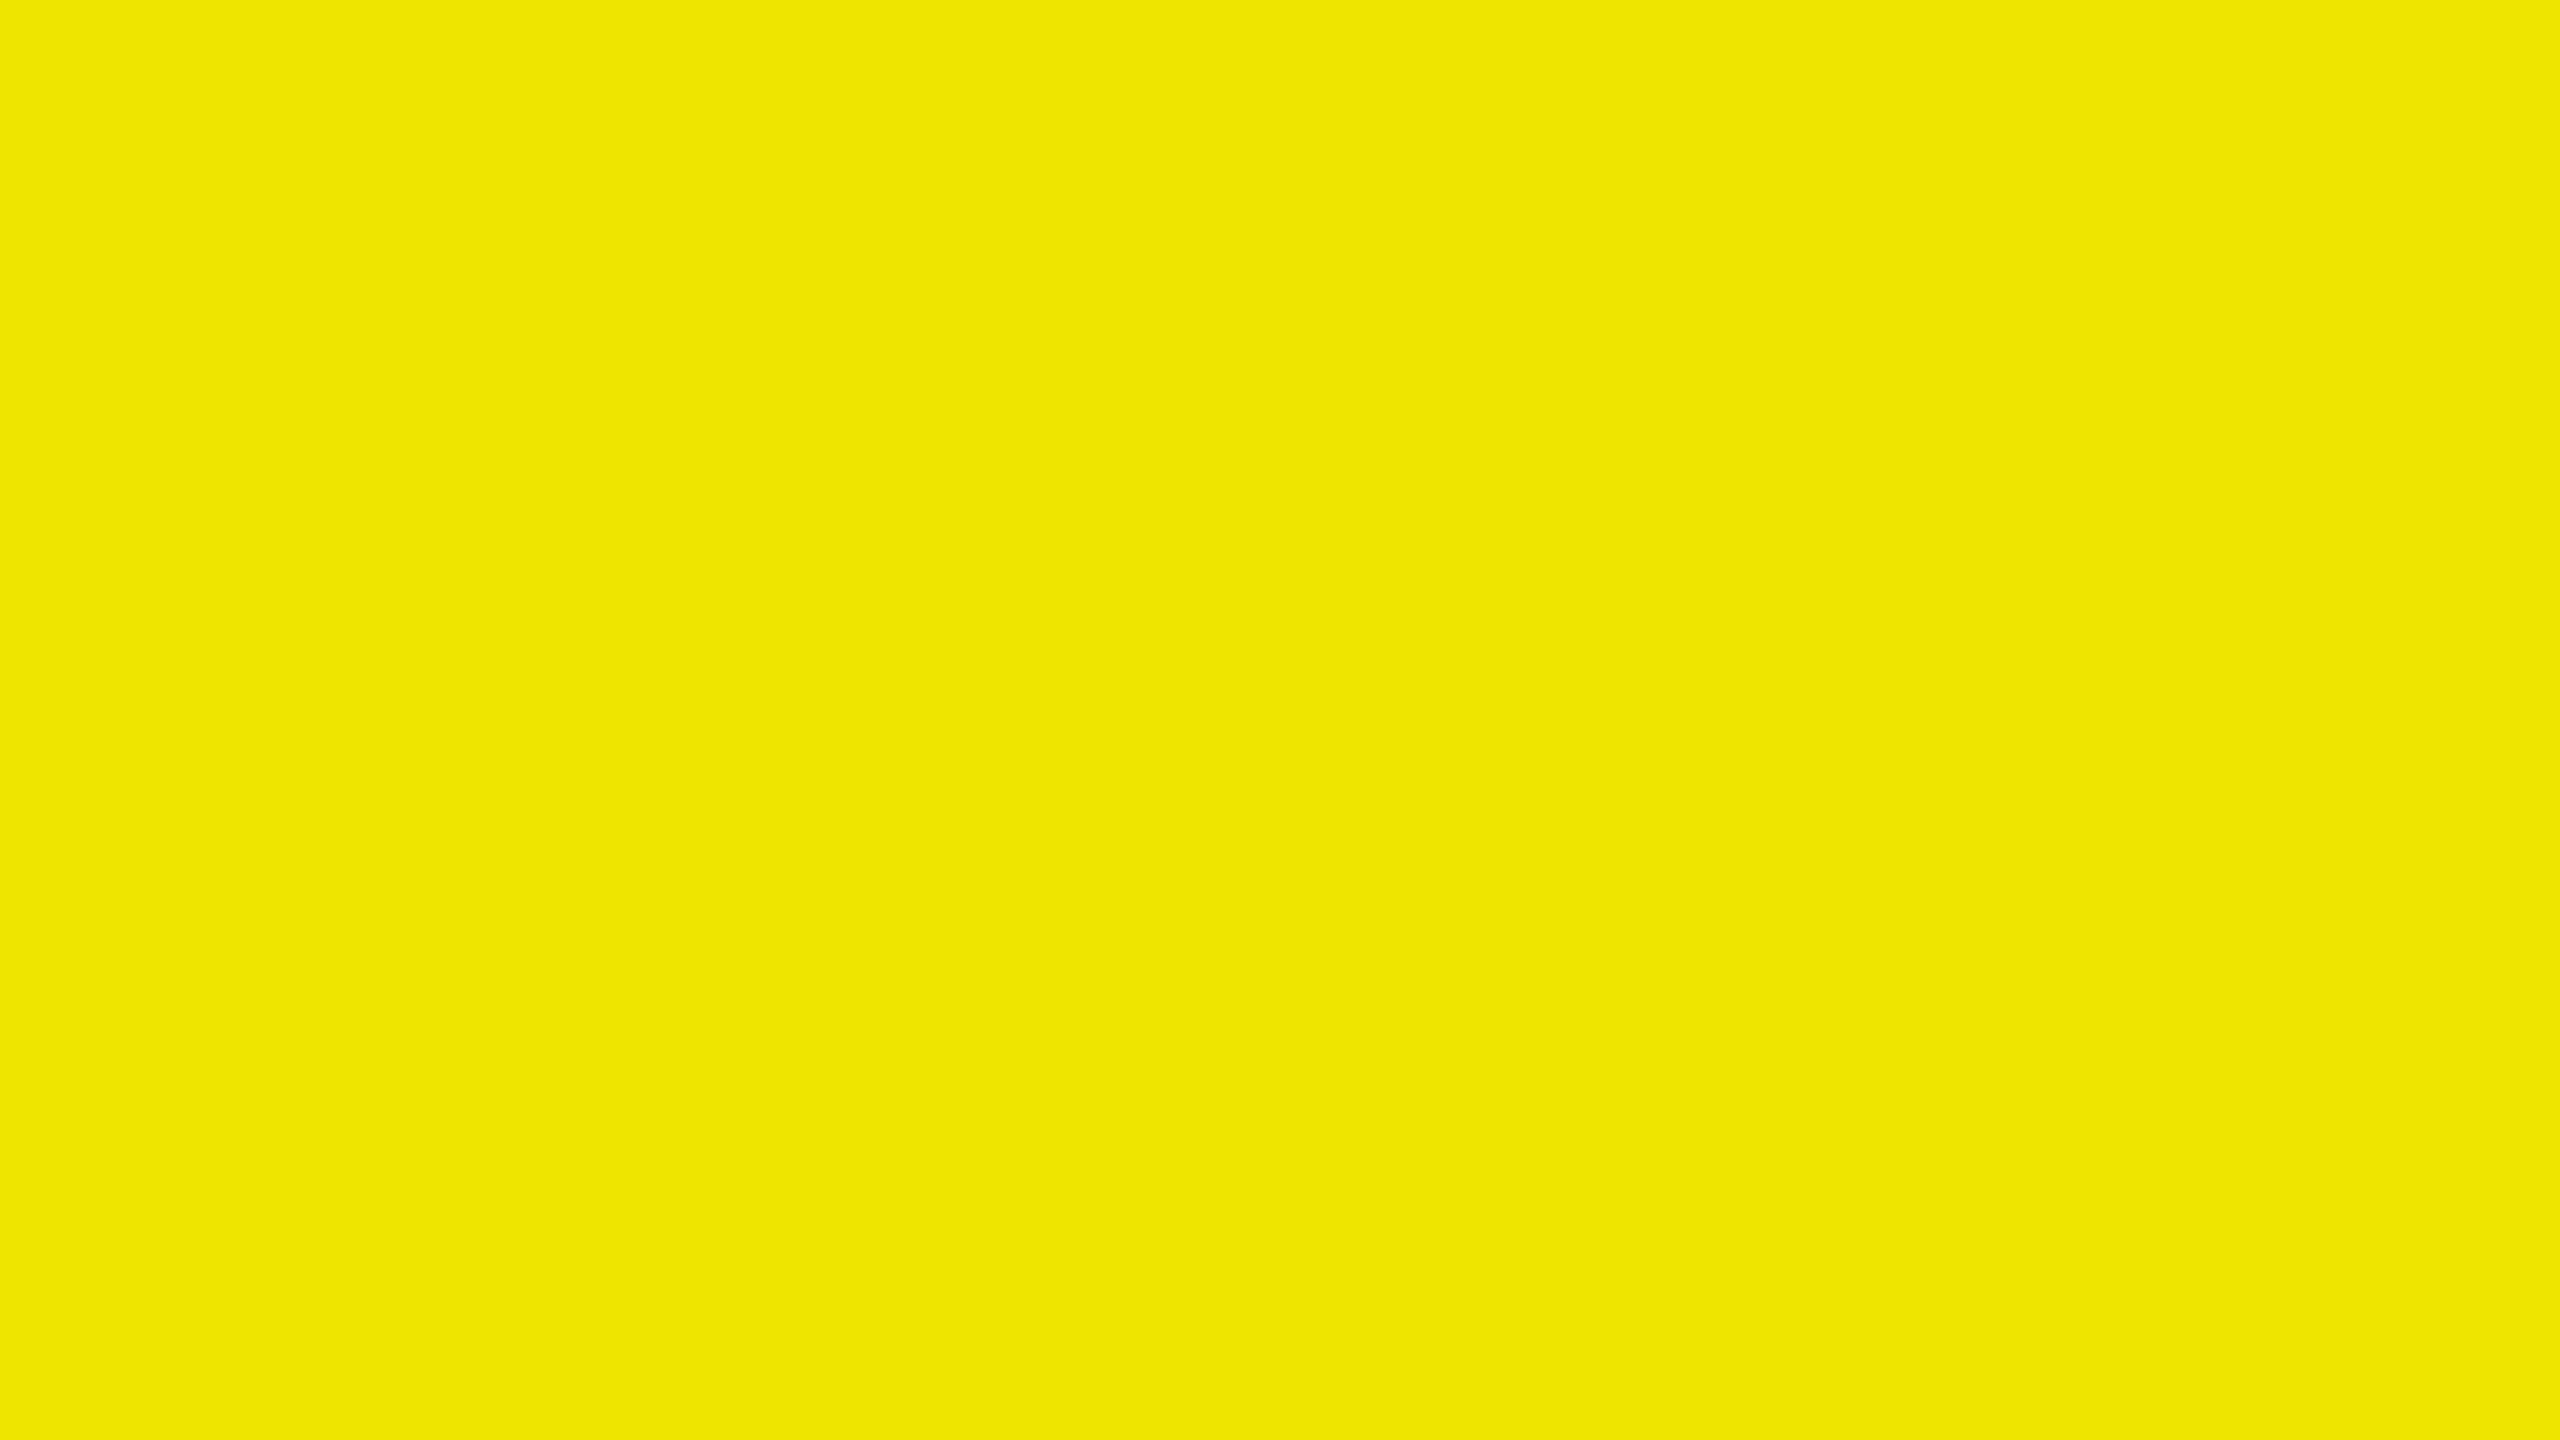 2560x1440 Titanium Yellow Solid Color Background